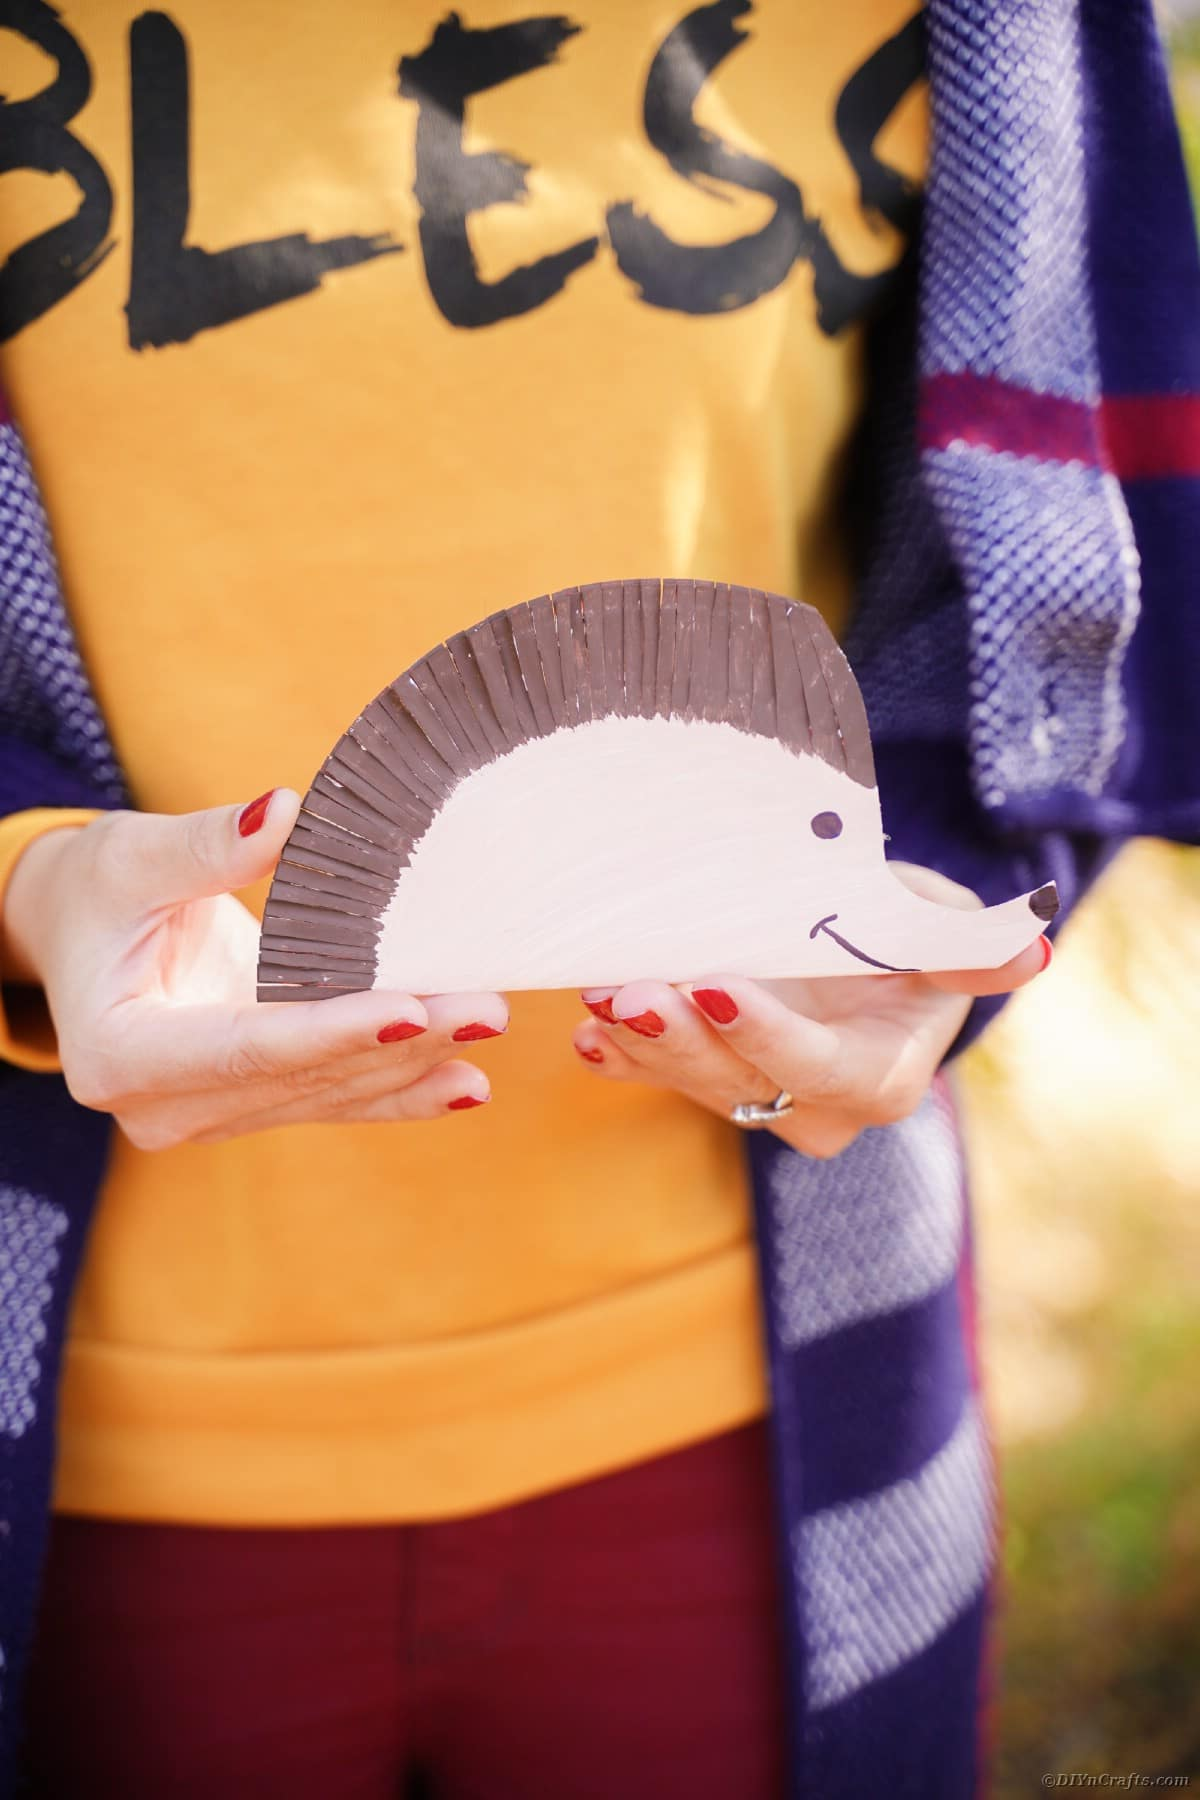 Woman in orange shirt holding a paper plate hedgehog